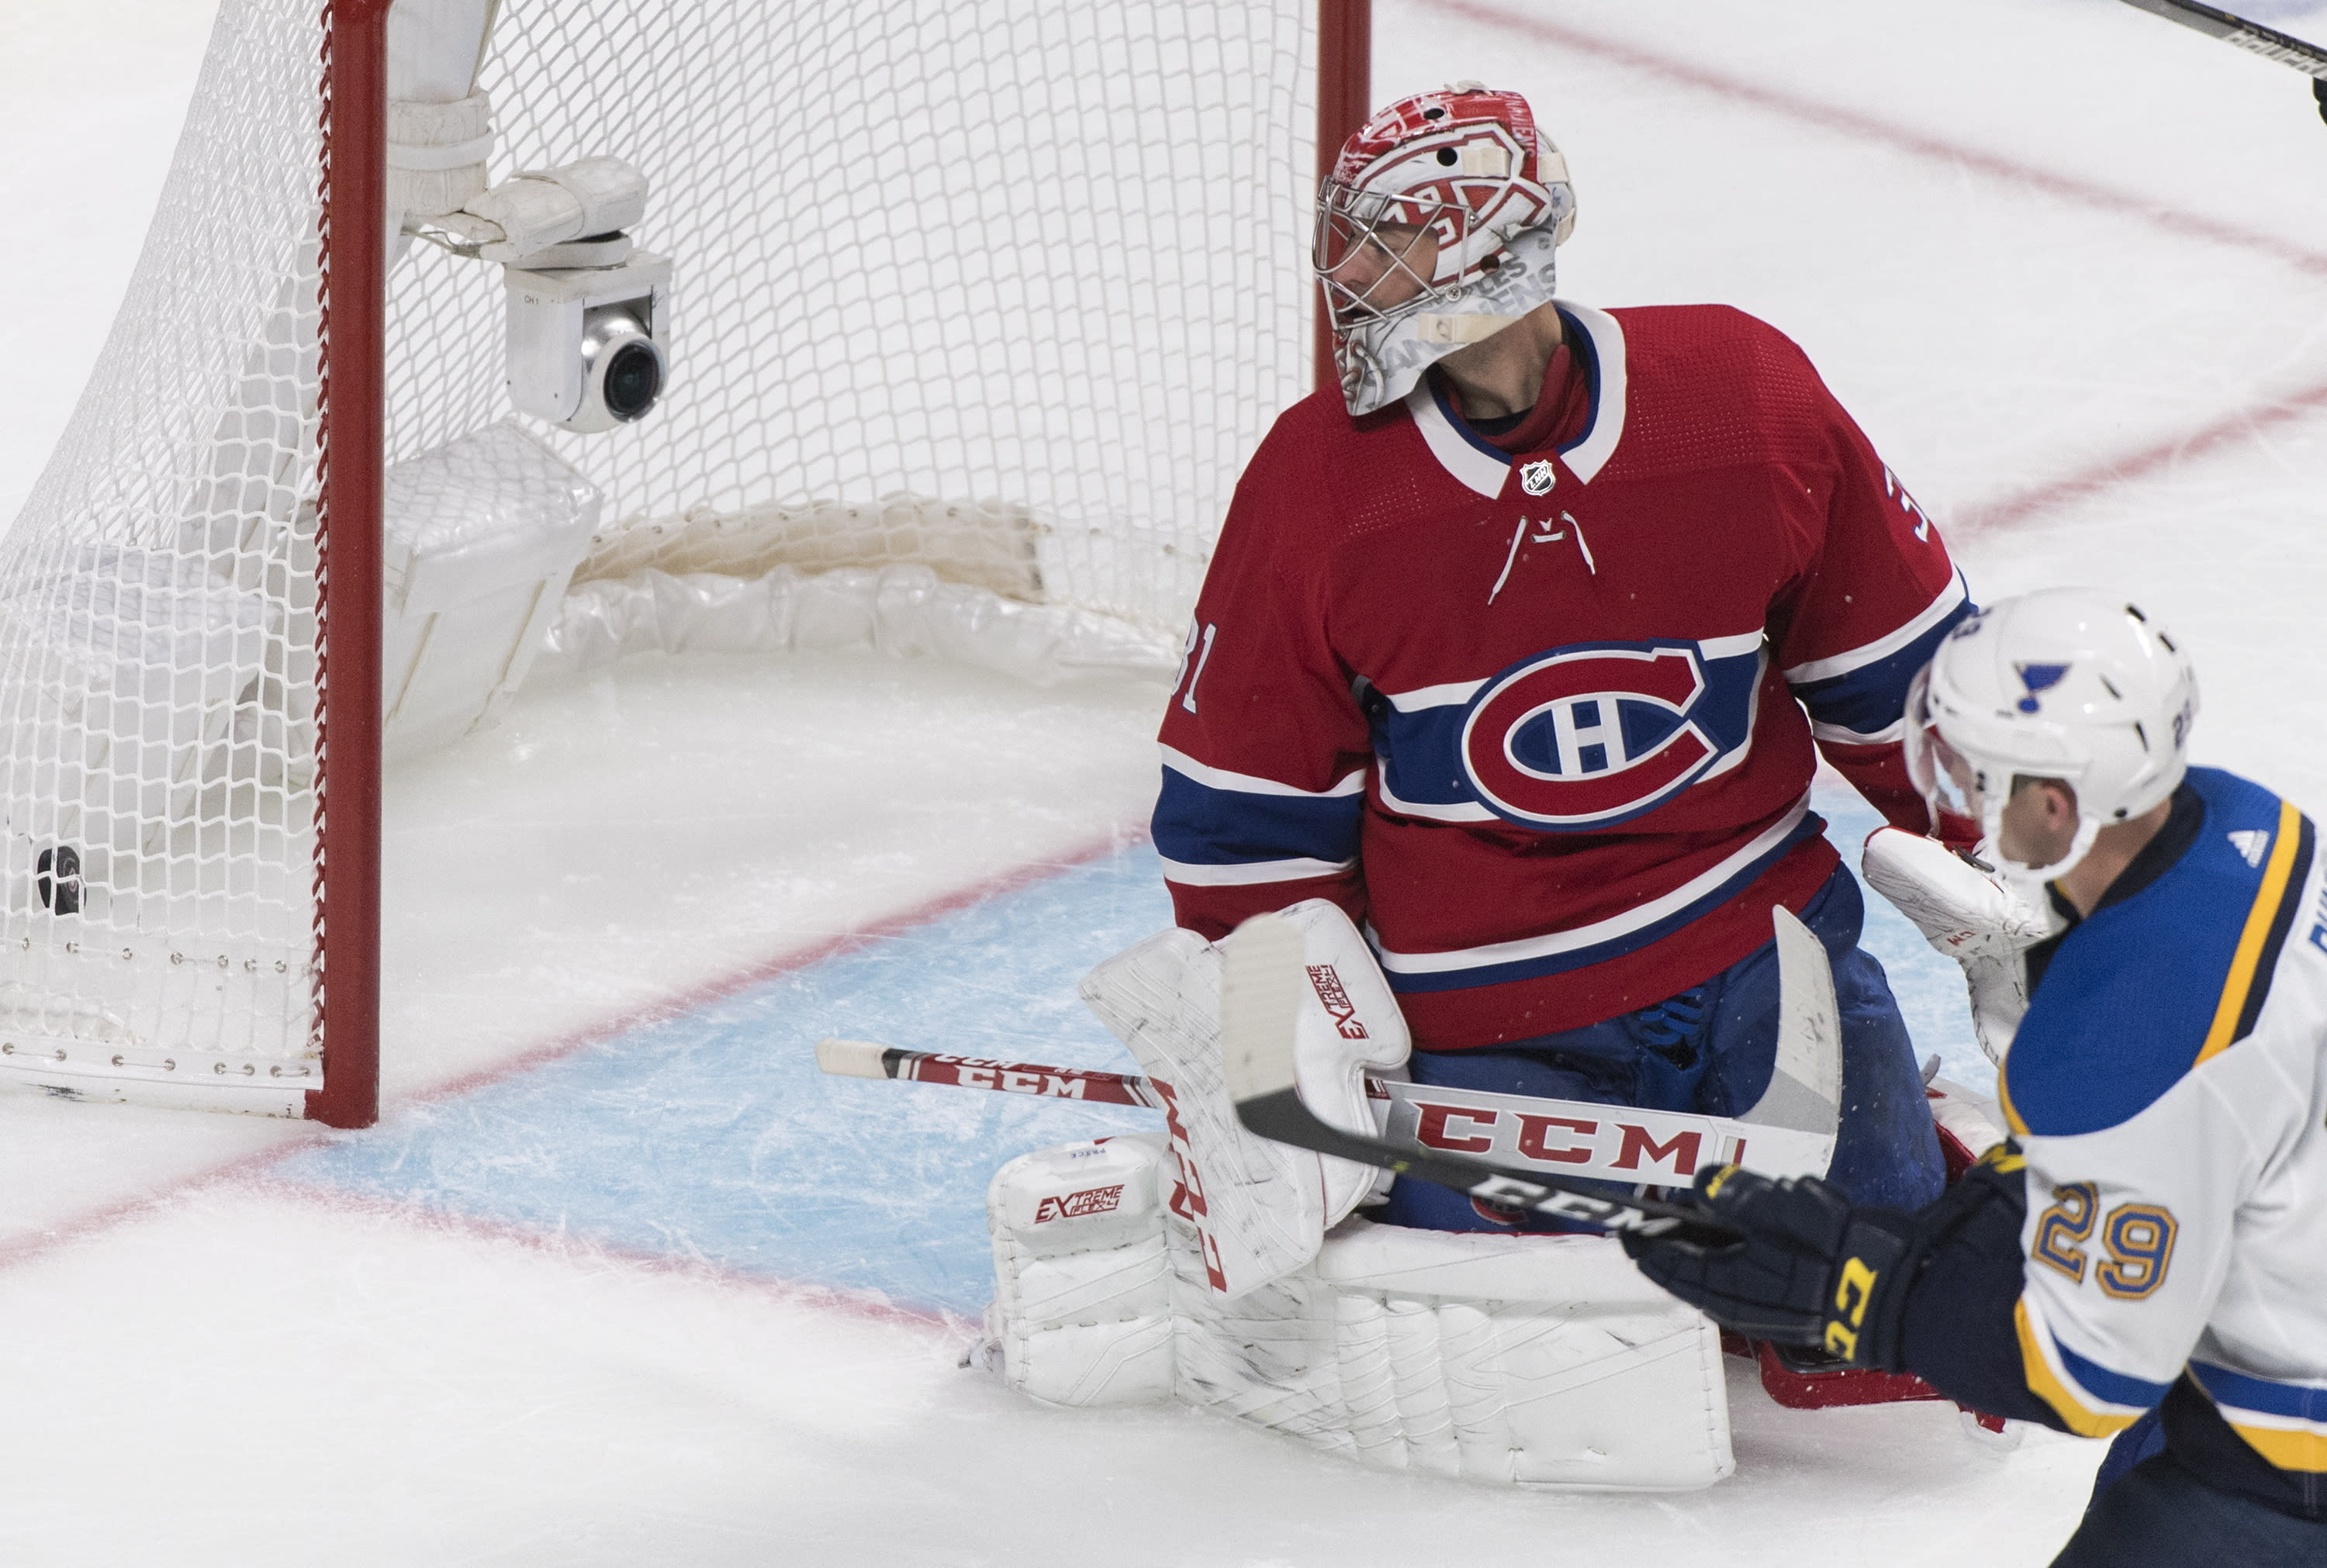 Montreal Canadiens goaltender Carey Price looks back on his goal after being scored on by St. Louis Blues' Vince Dunn (29) during second period NHL hockey action in Montreal, Saturday, Oct. 12, 2019. (Graham Hughes/The Canadian Press via AP)